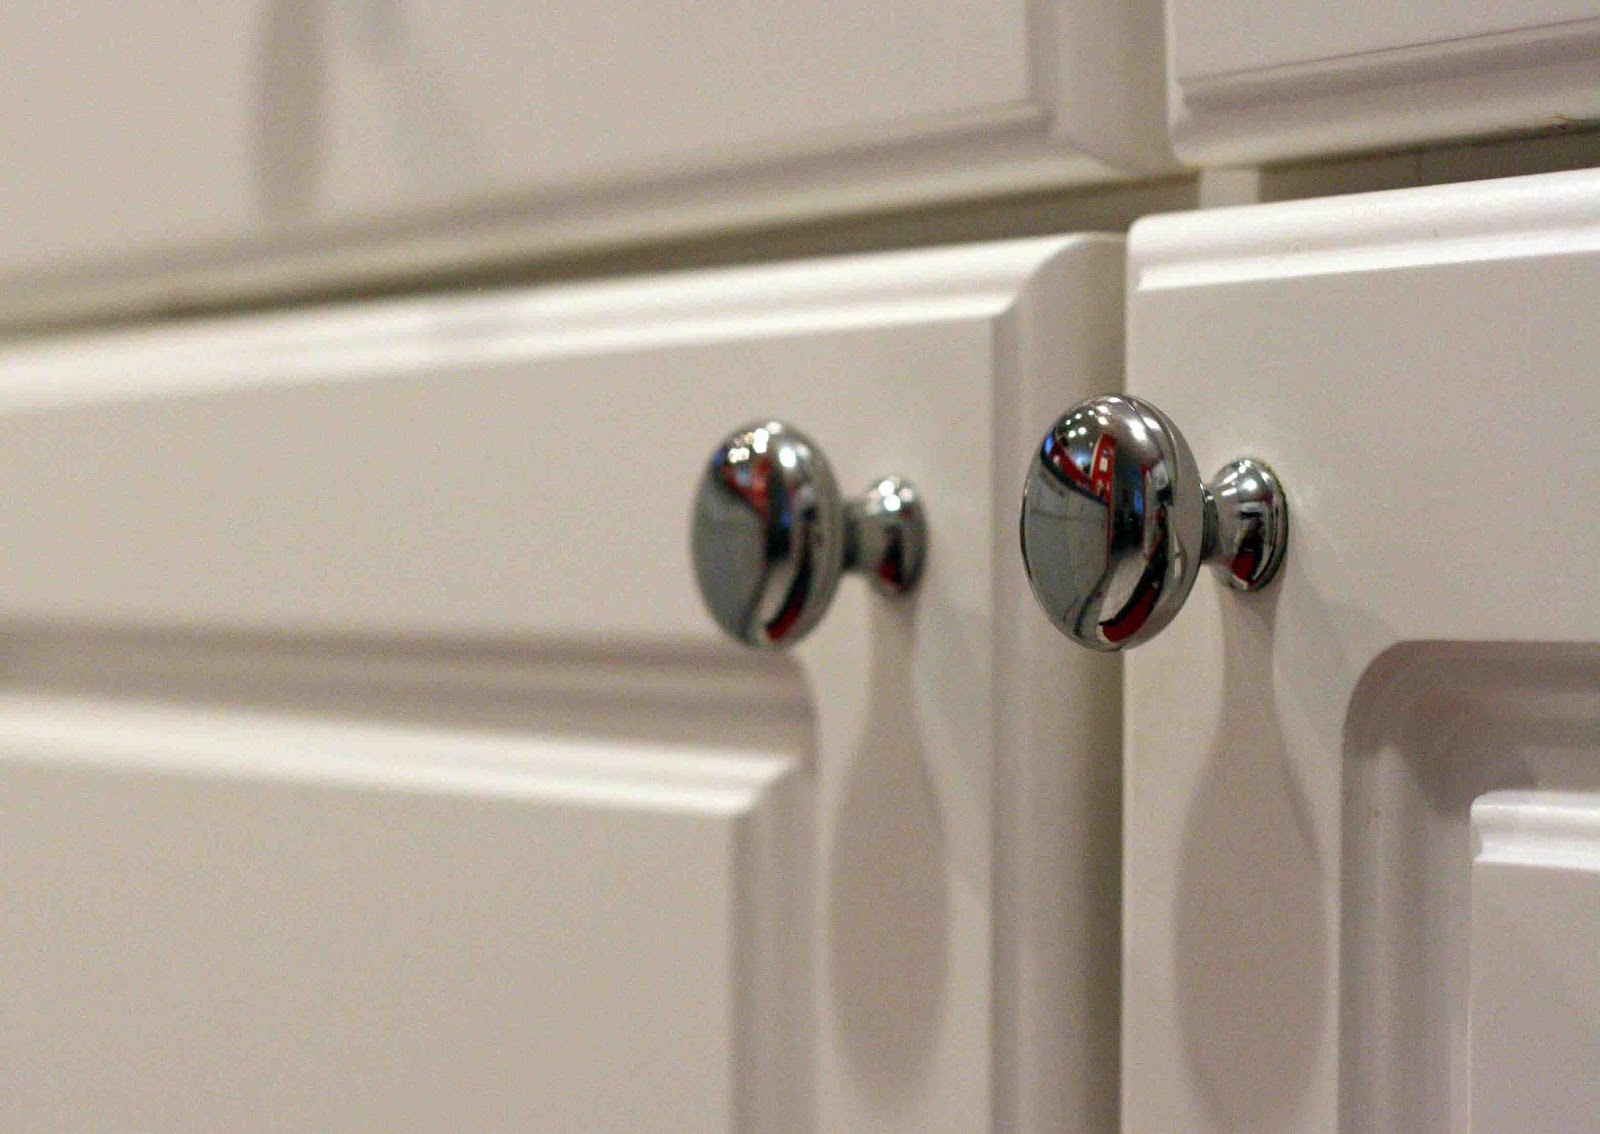 Kitchen CabiDoor Knobs Handles